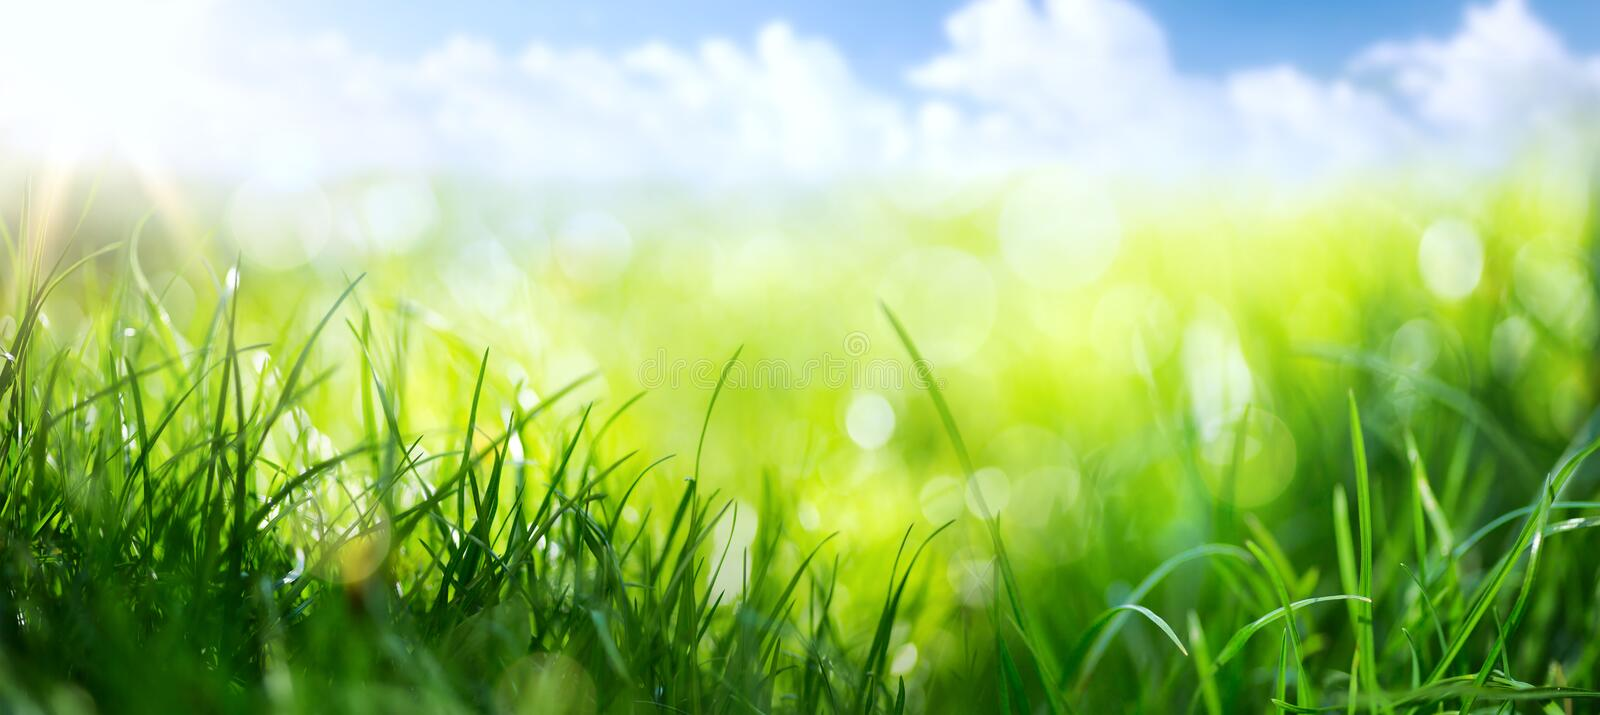 Art abstract spring background or summer background with fresh g. Abstract spring background or summer background with fresh grass royalty free stock images